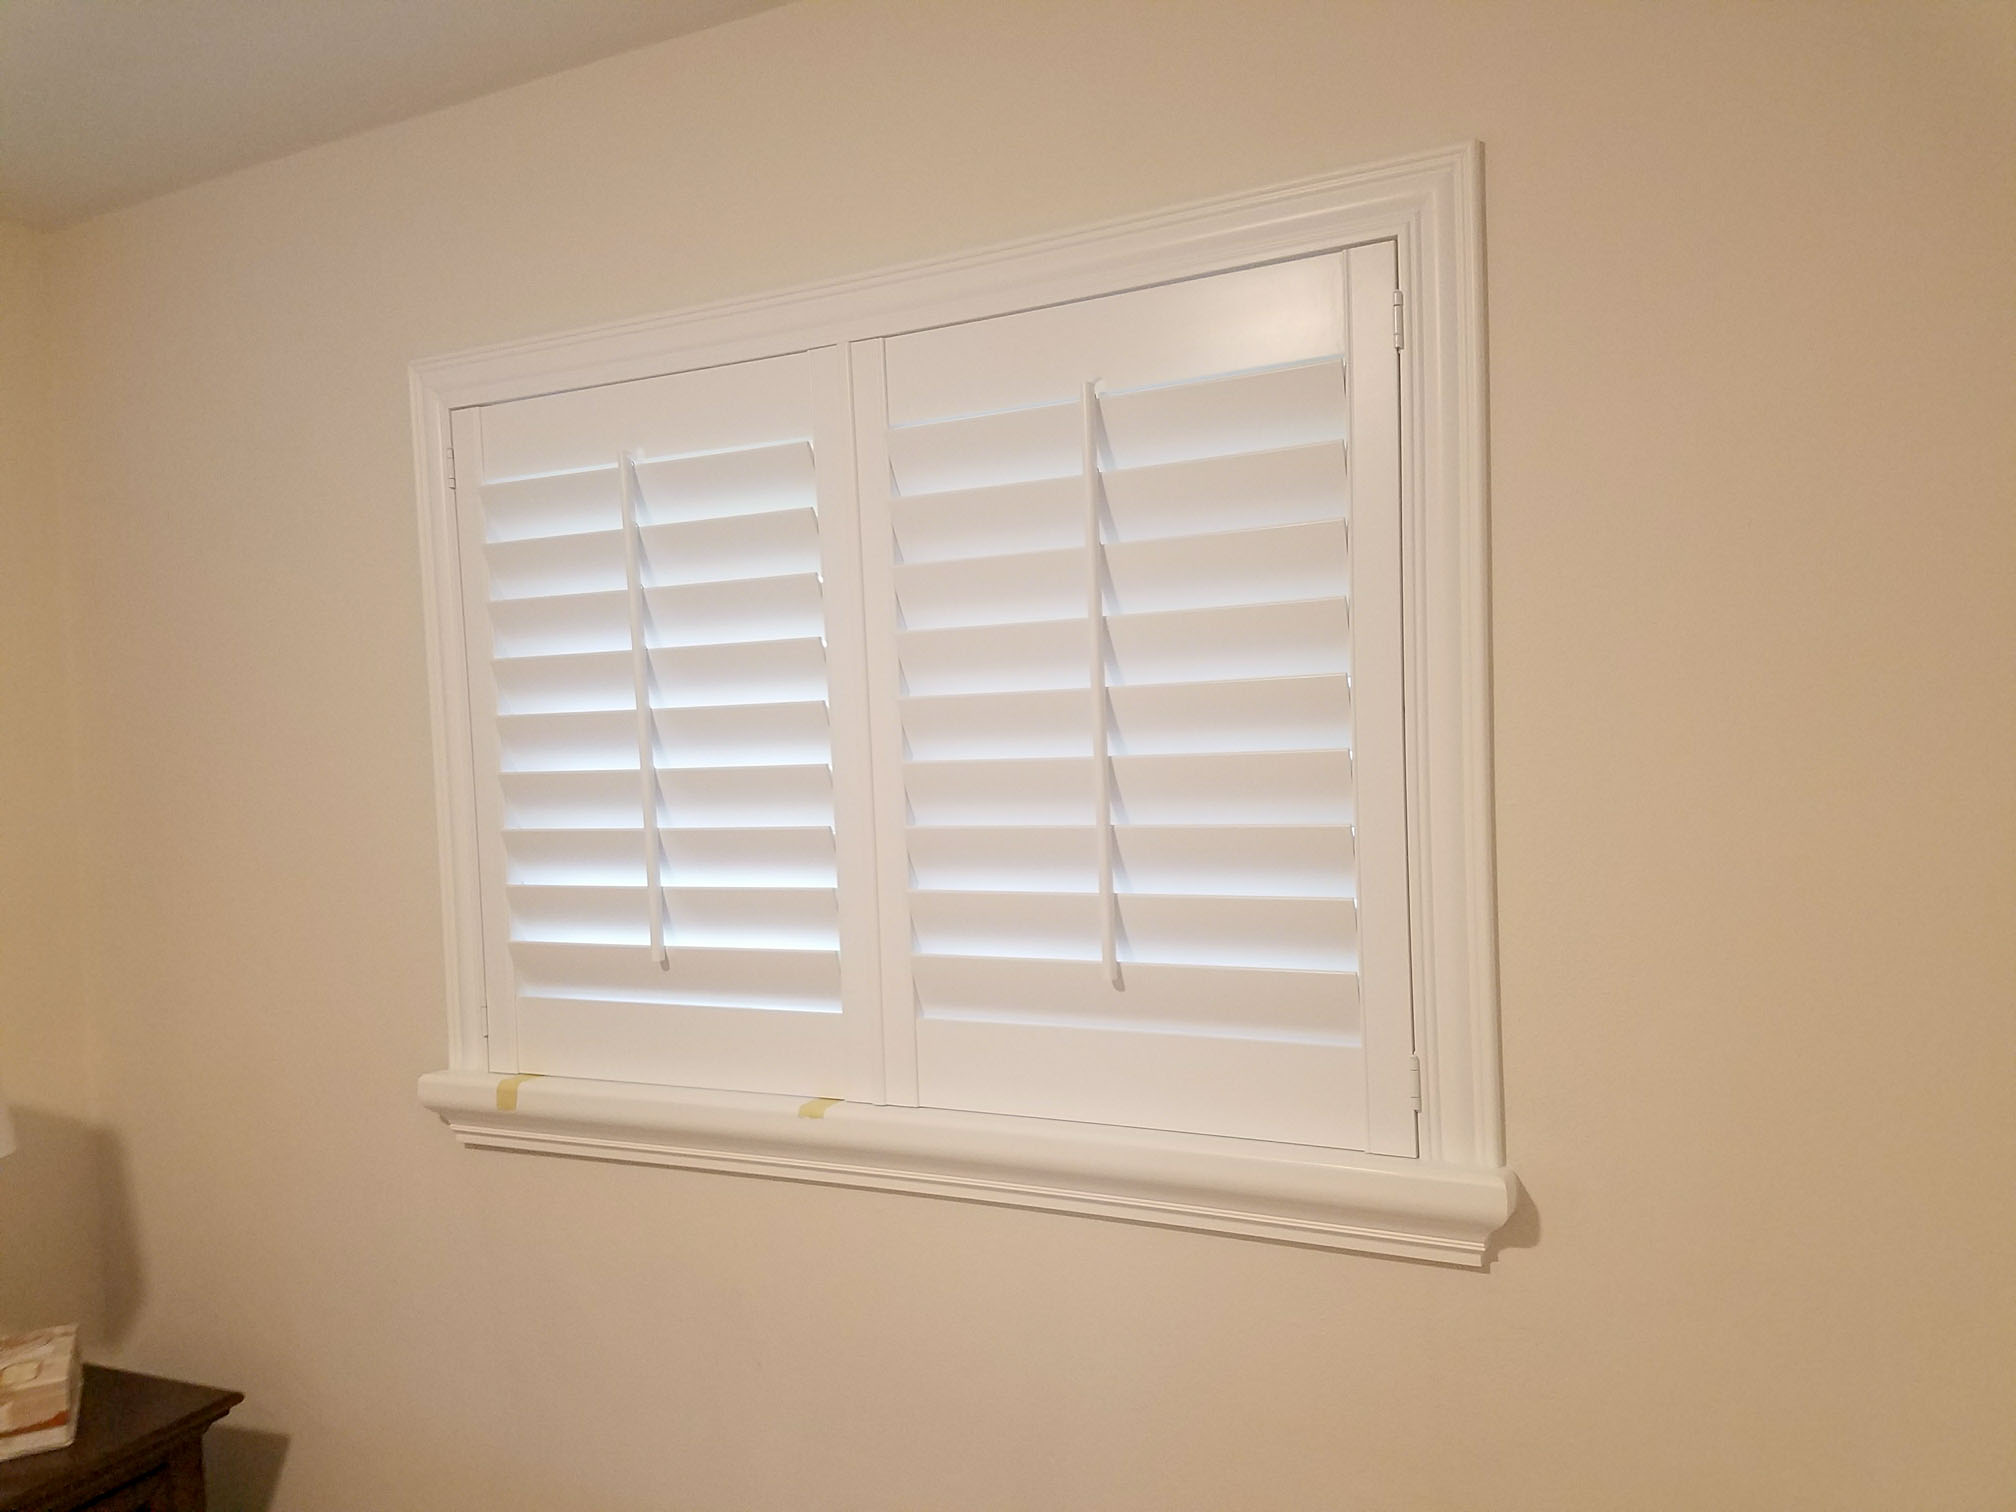 plantation shutters gallery PLANTATION SHUTTERS GALLERY 20170821 170640